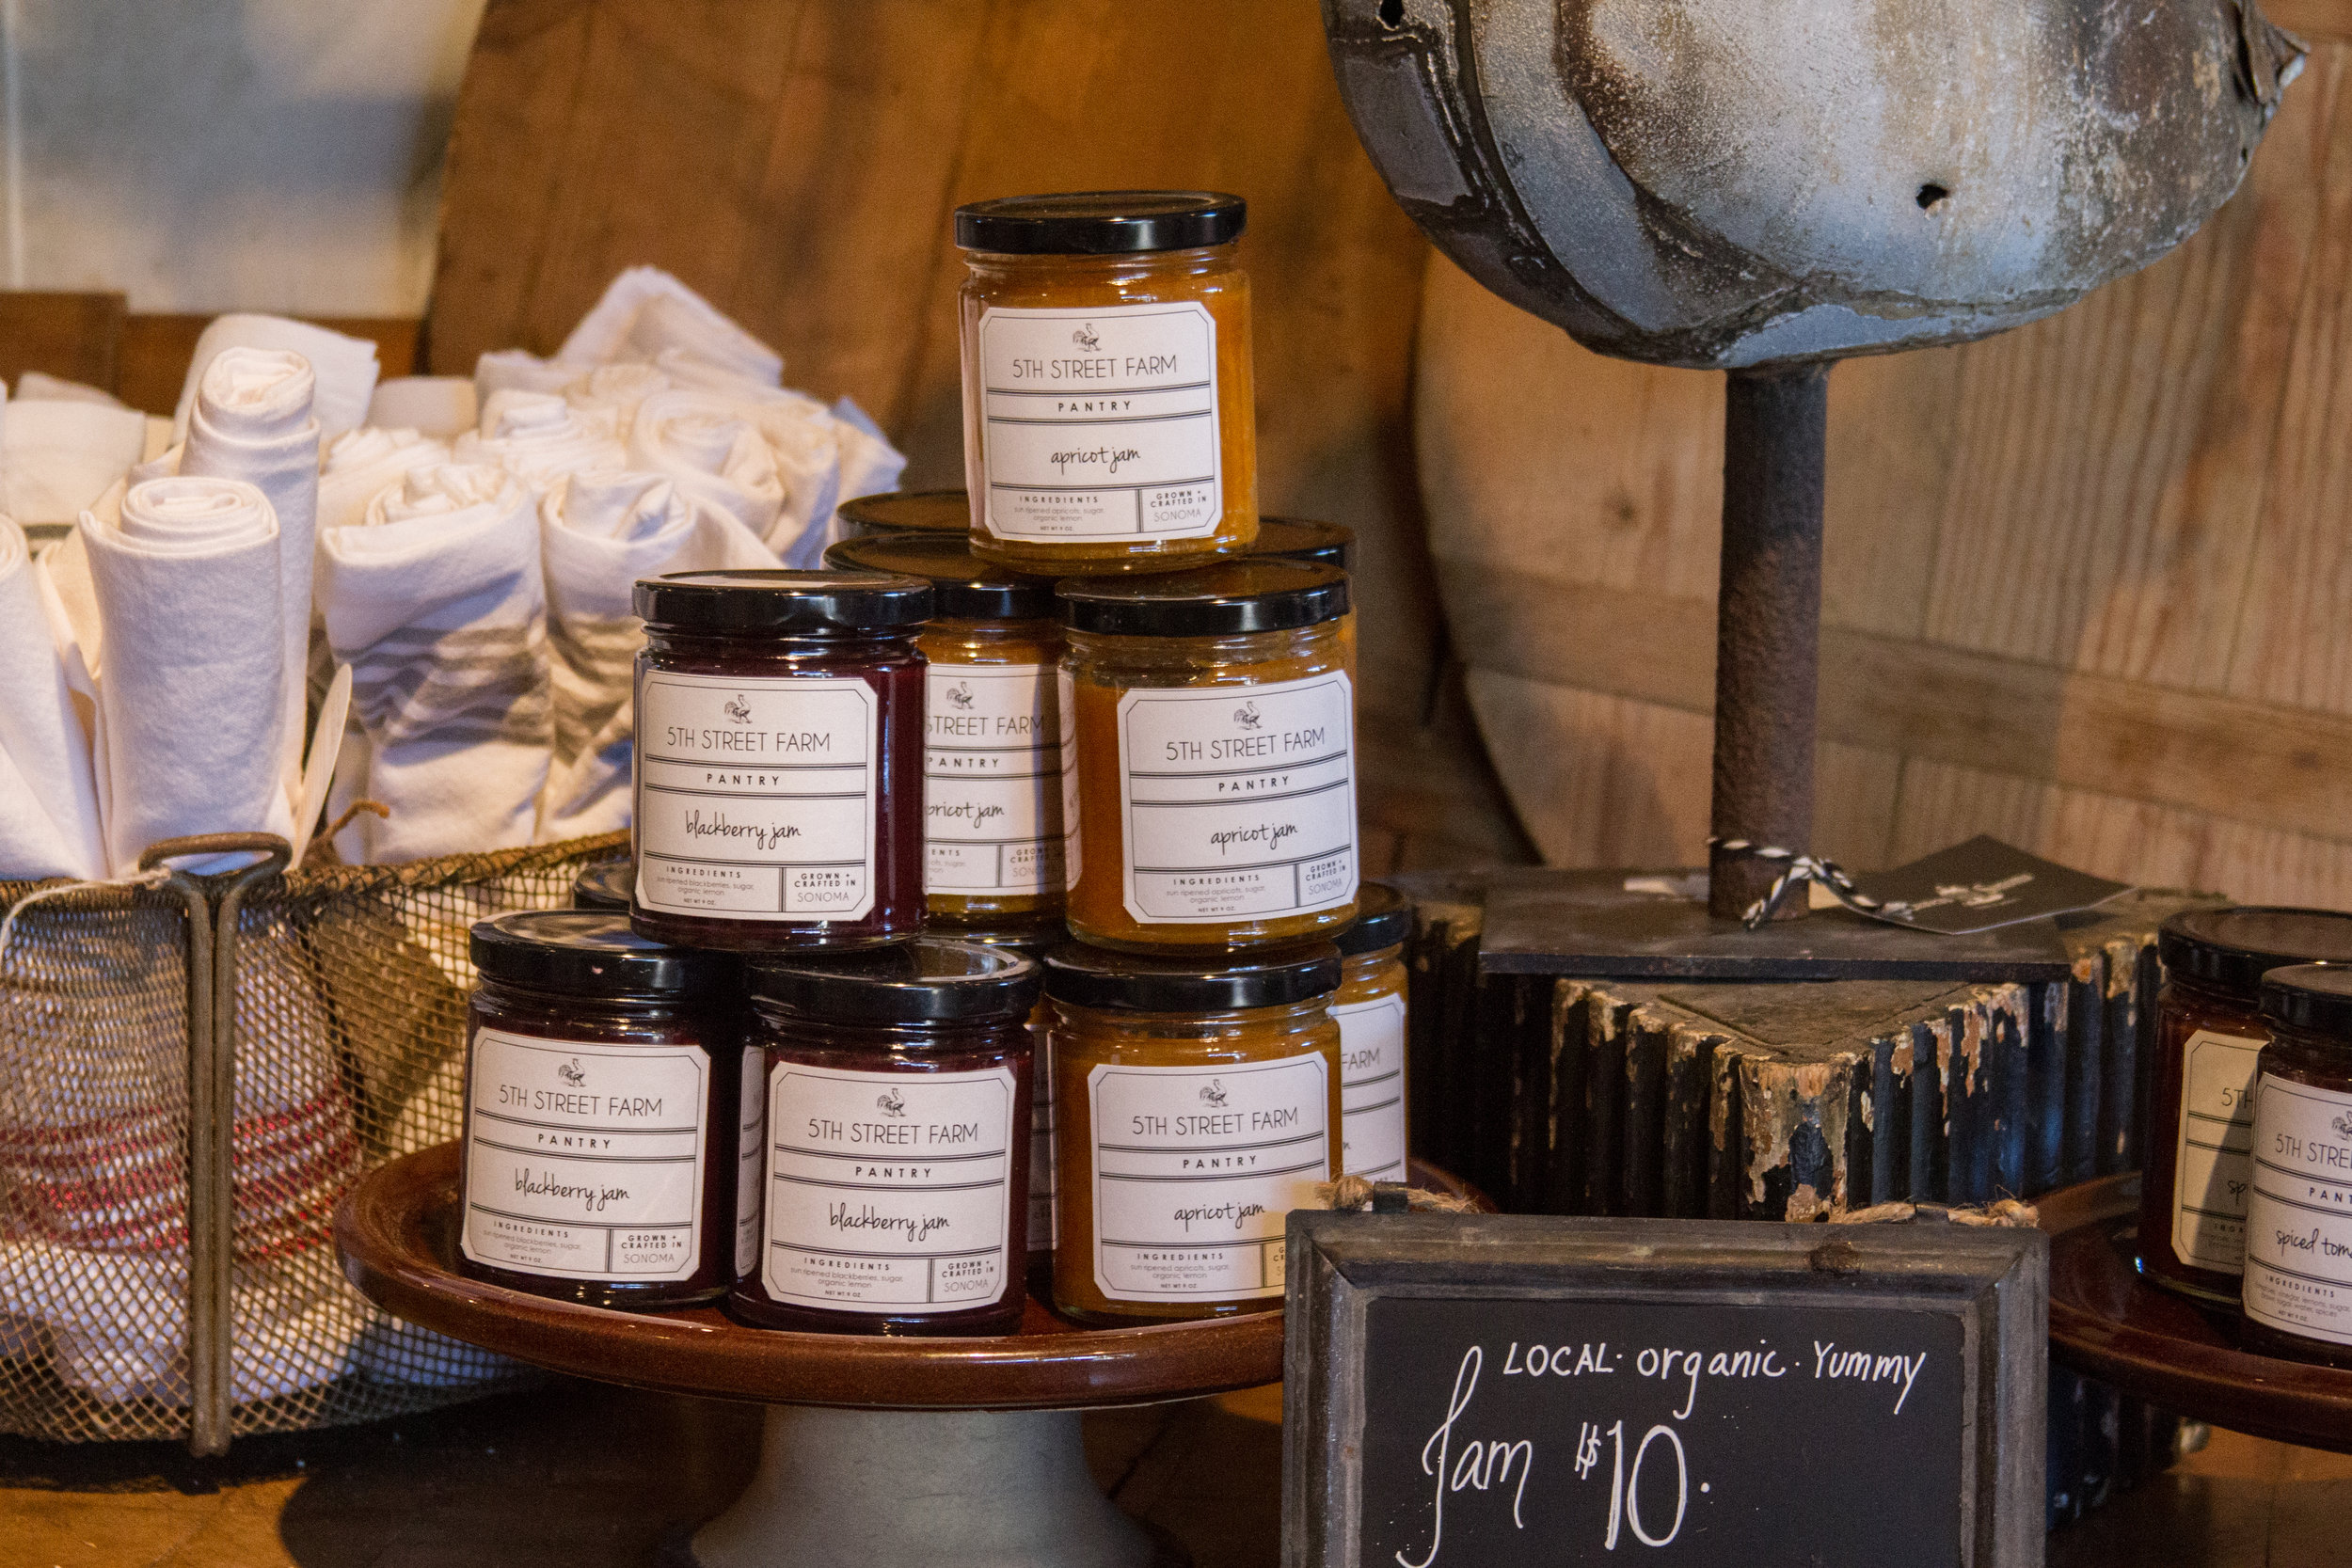 5th Street Farm Preserves at Chateau Sonoma. | chateausonoma.com